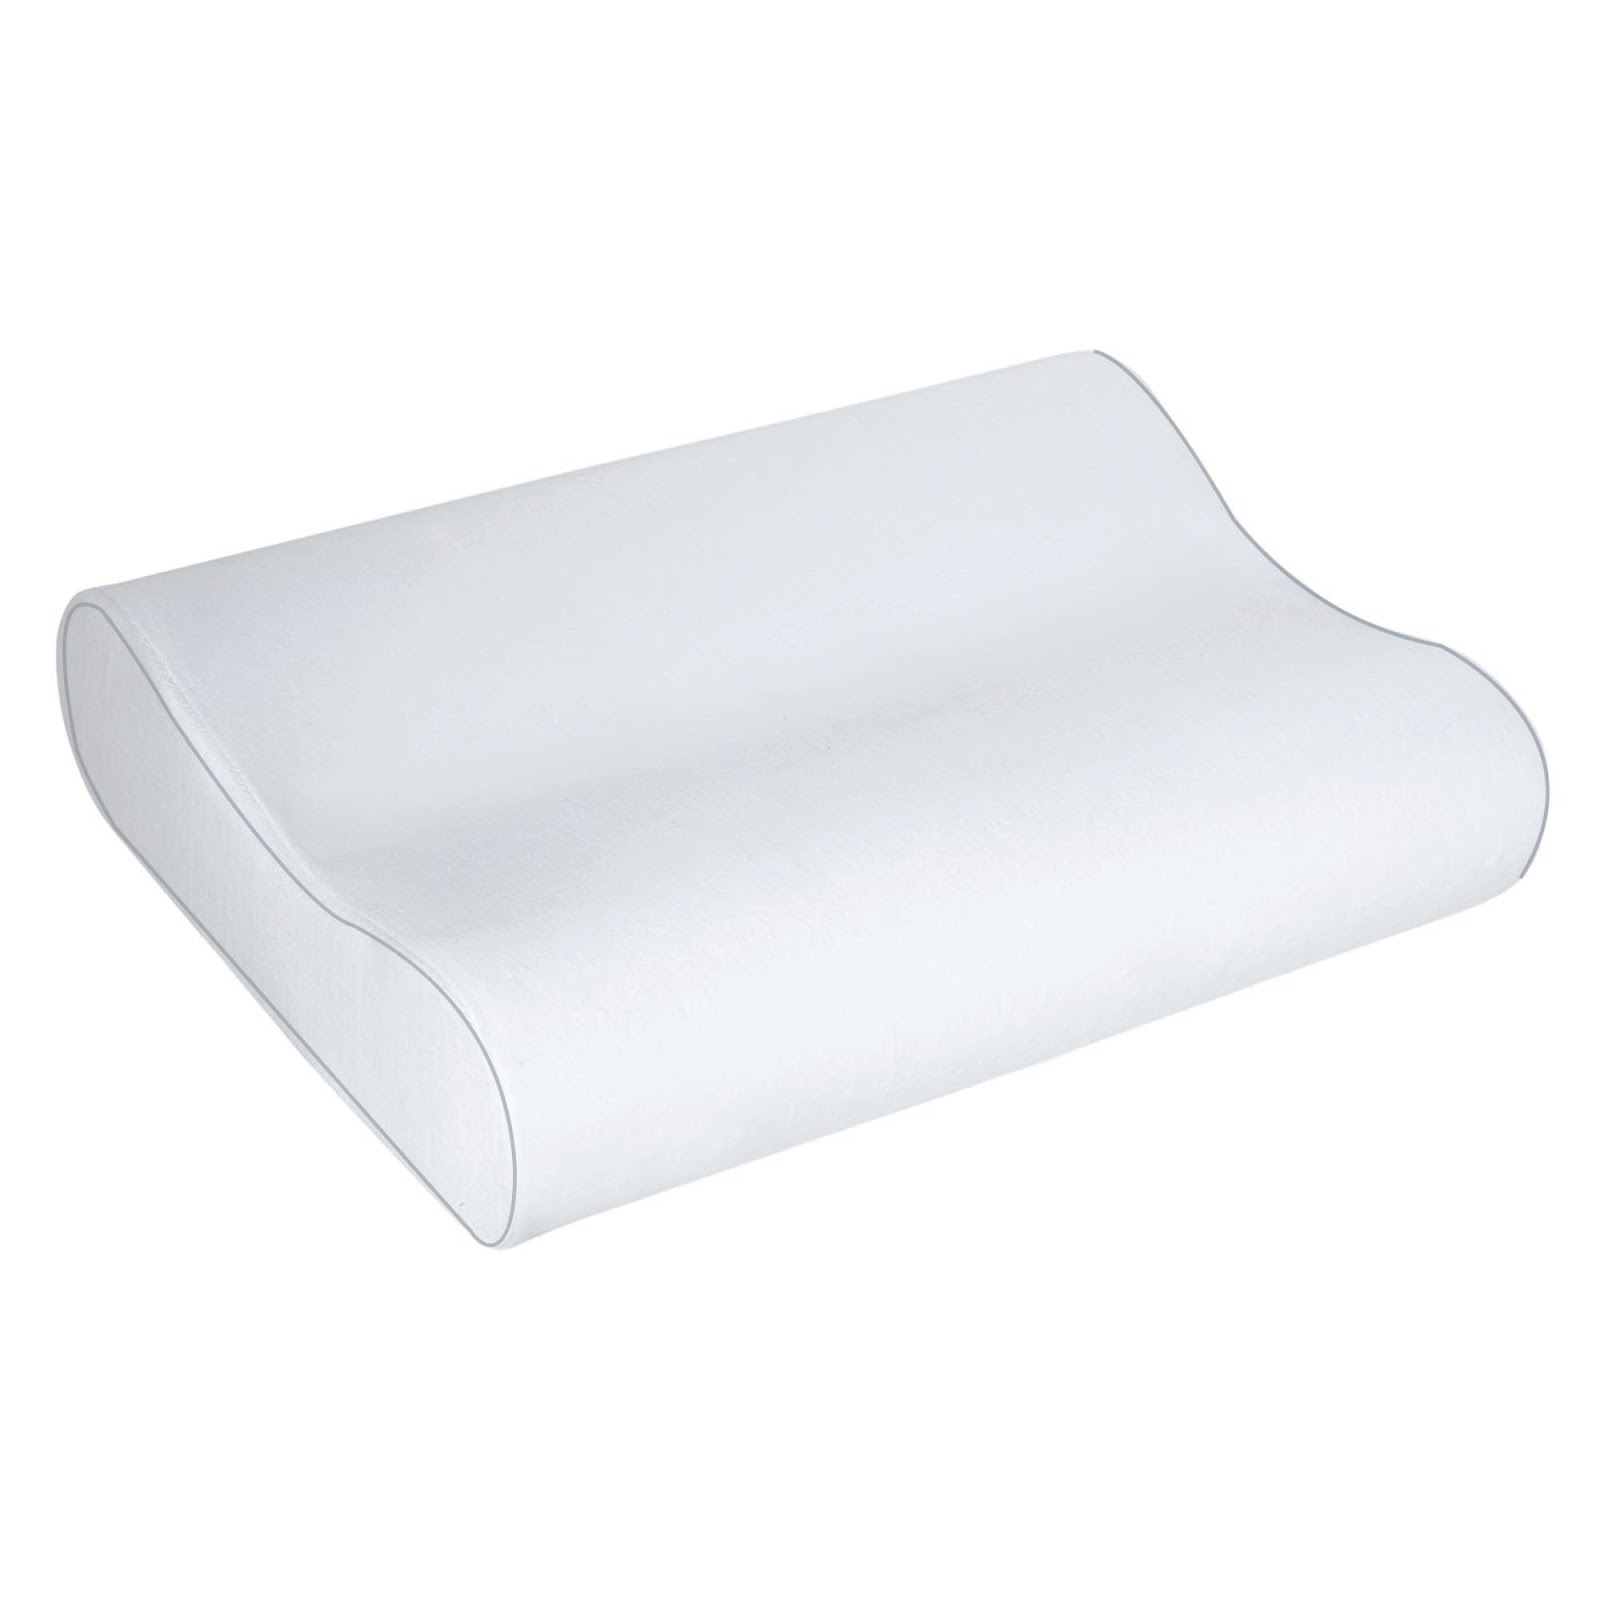 Image result for sleep innovations contour memory foam pillow